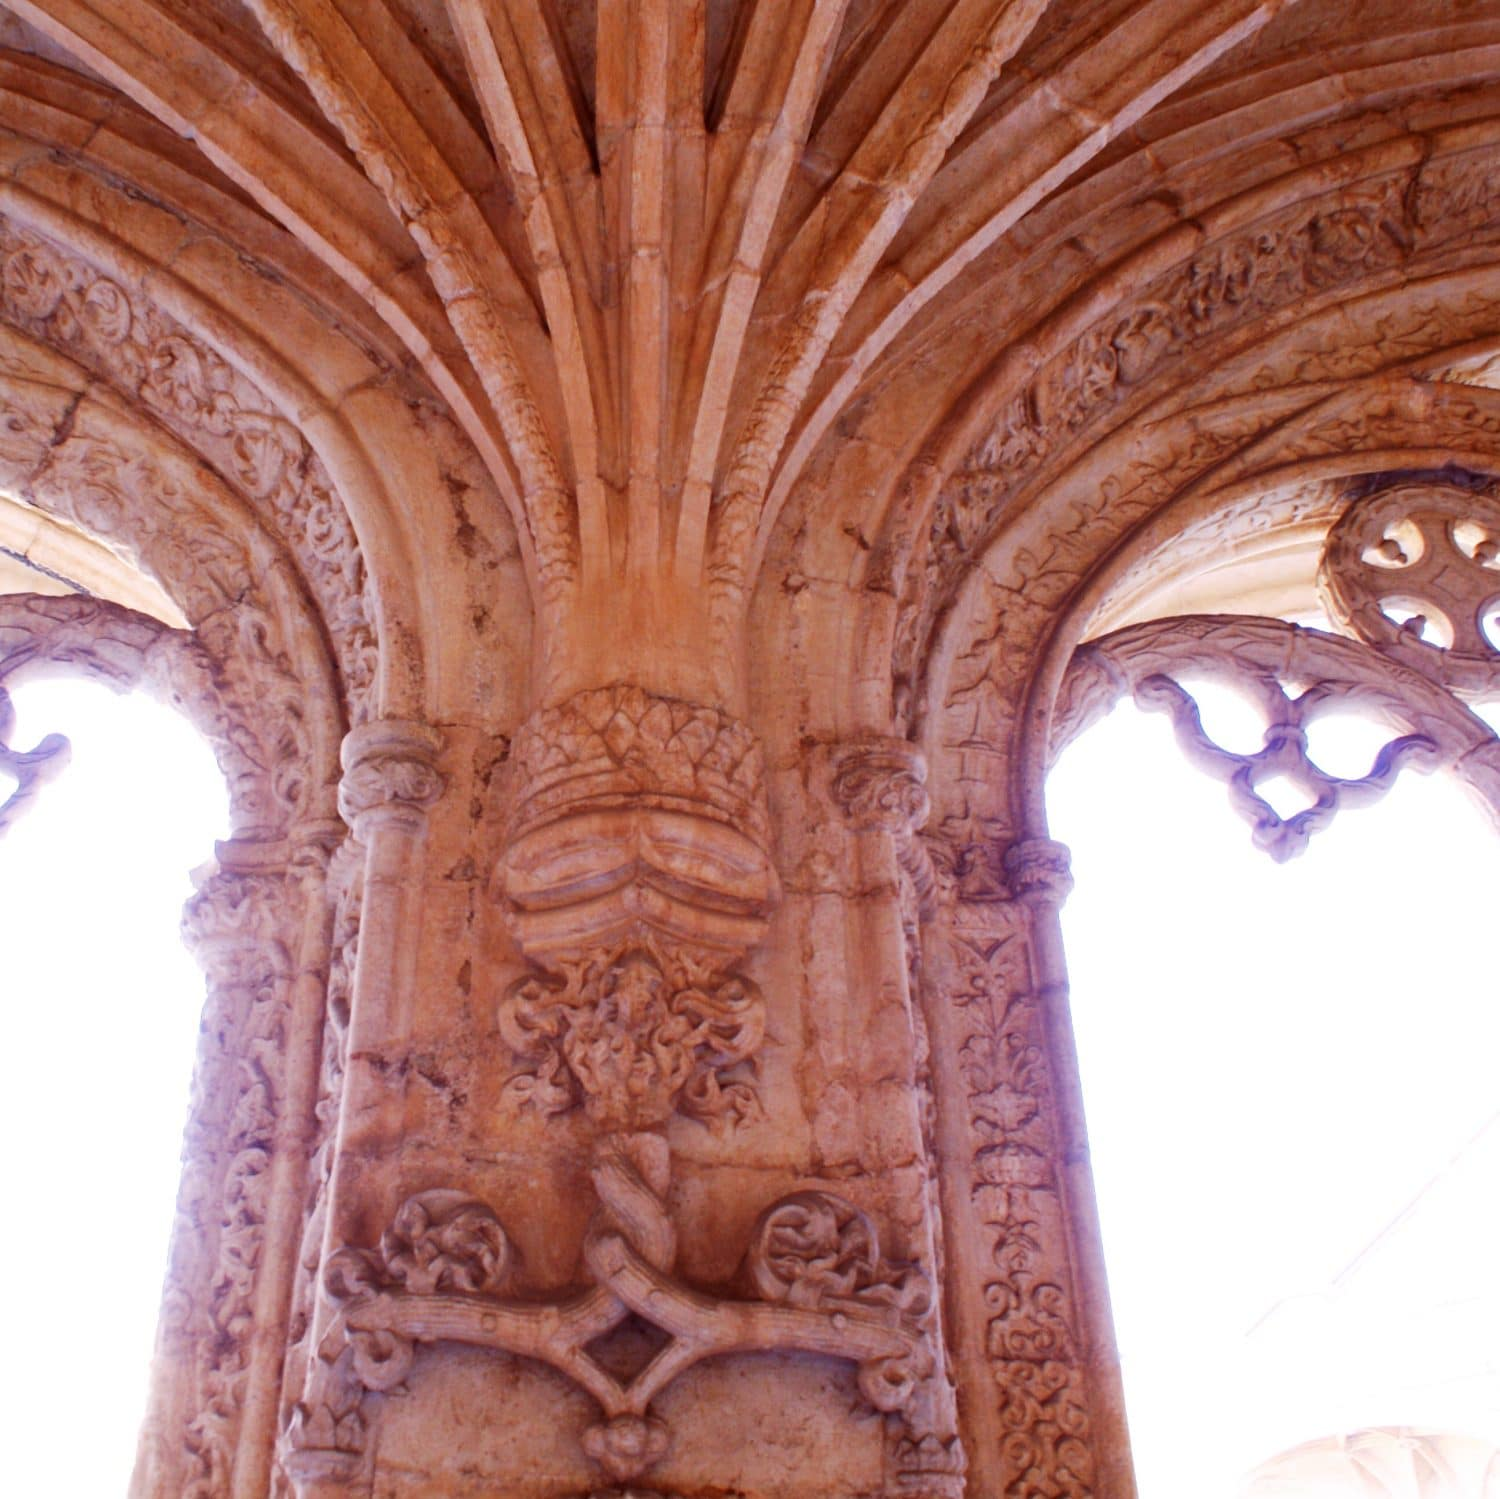 Arches in the cloisters at San Jeronimos Monastery